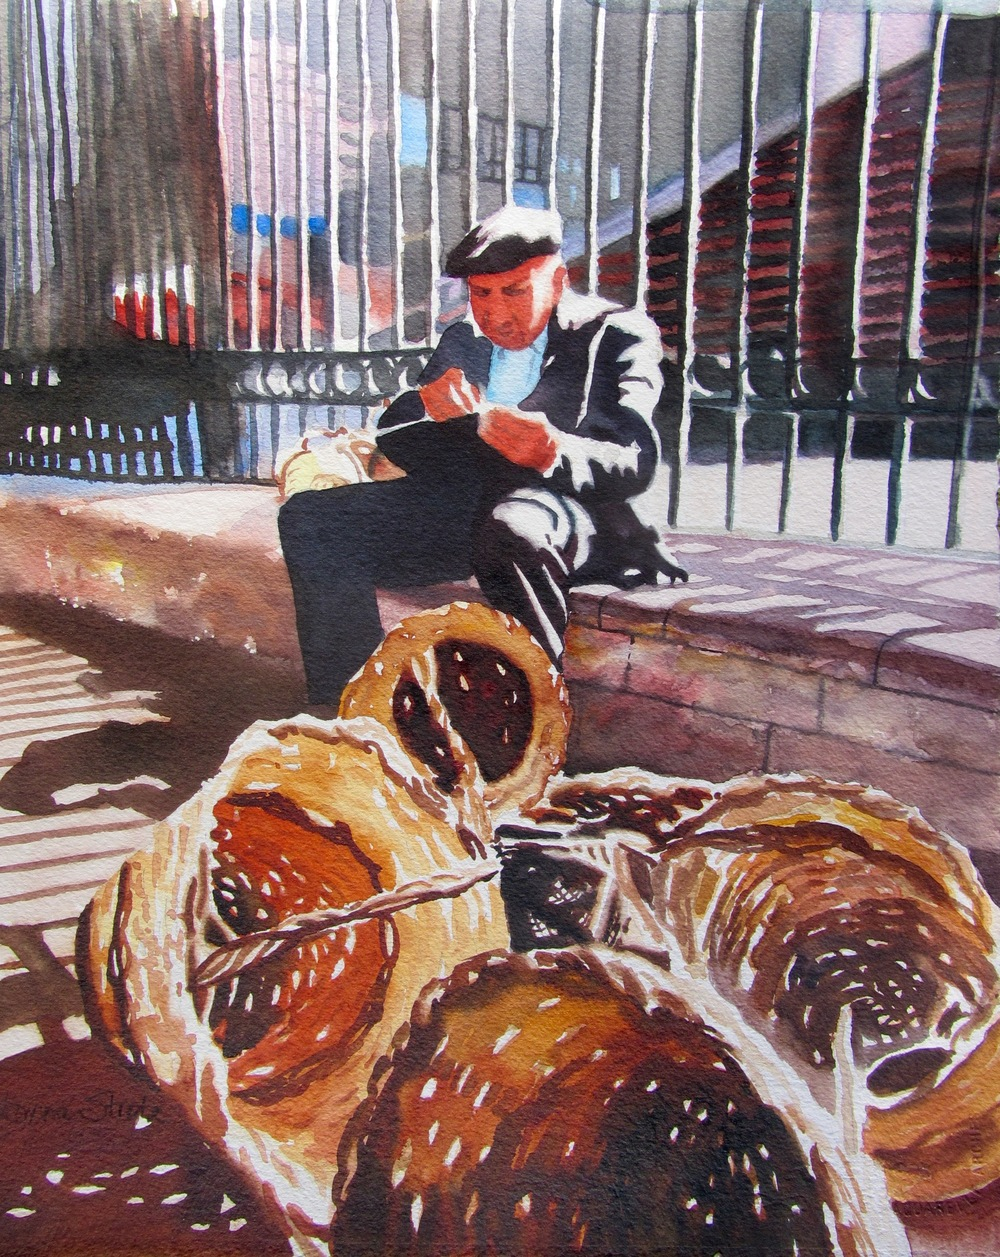 "Basketmaker, Watercolor, 20"" x 14 "", $750."